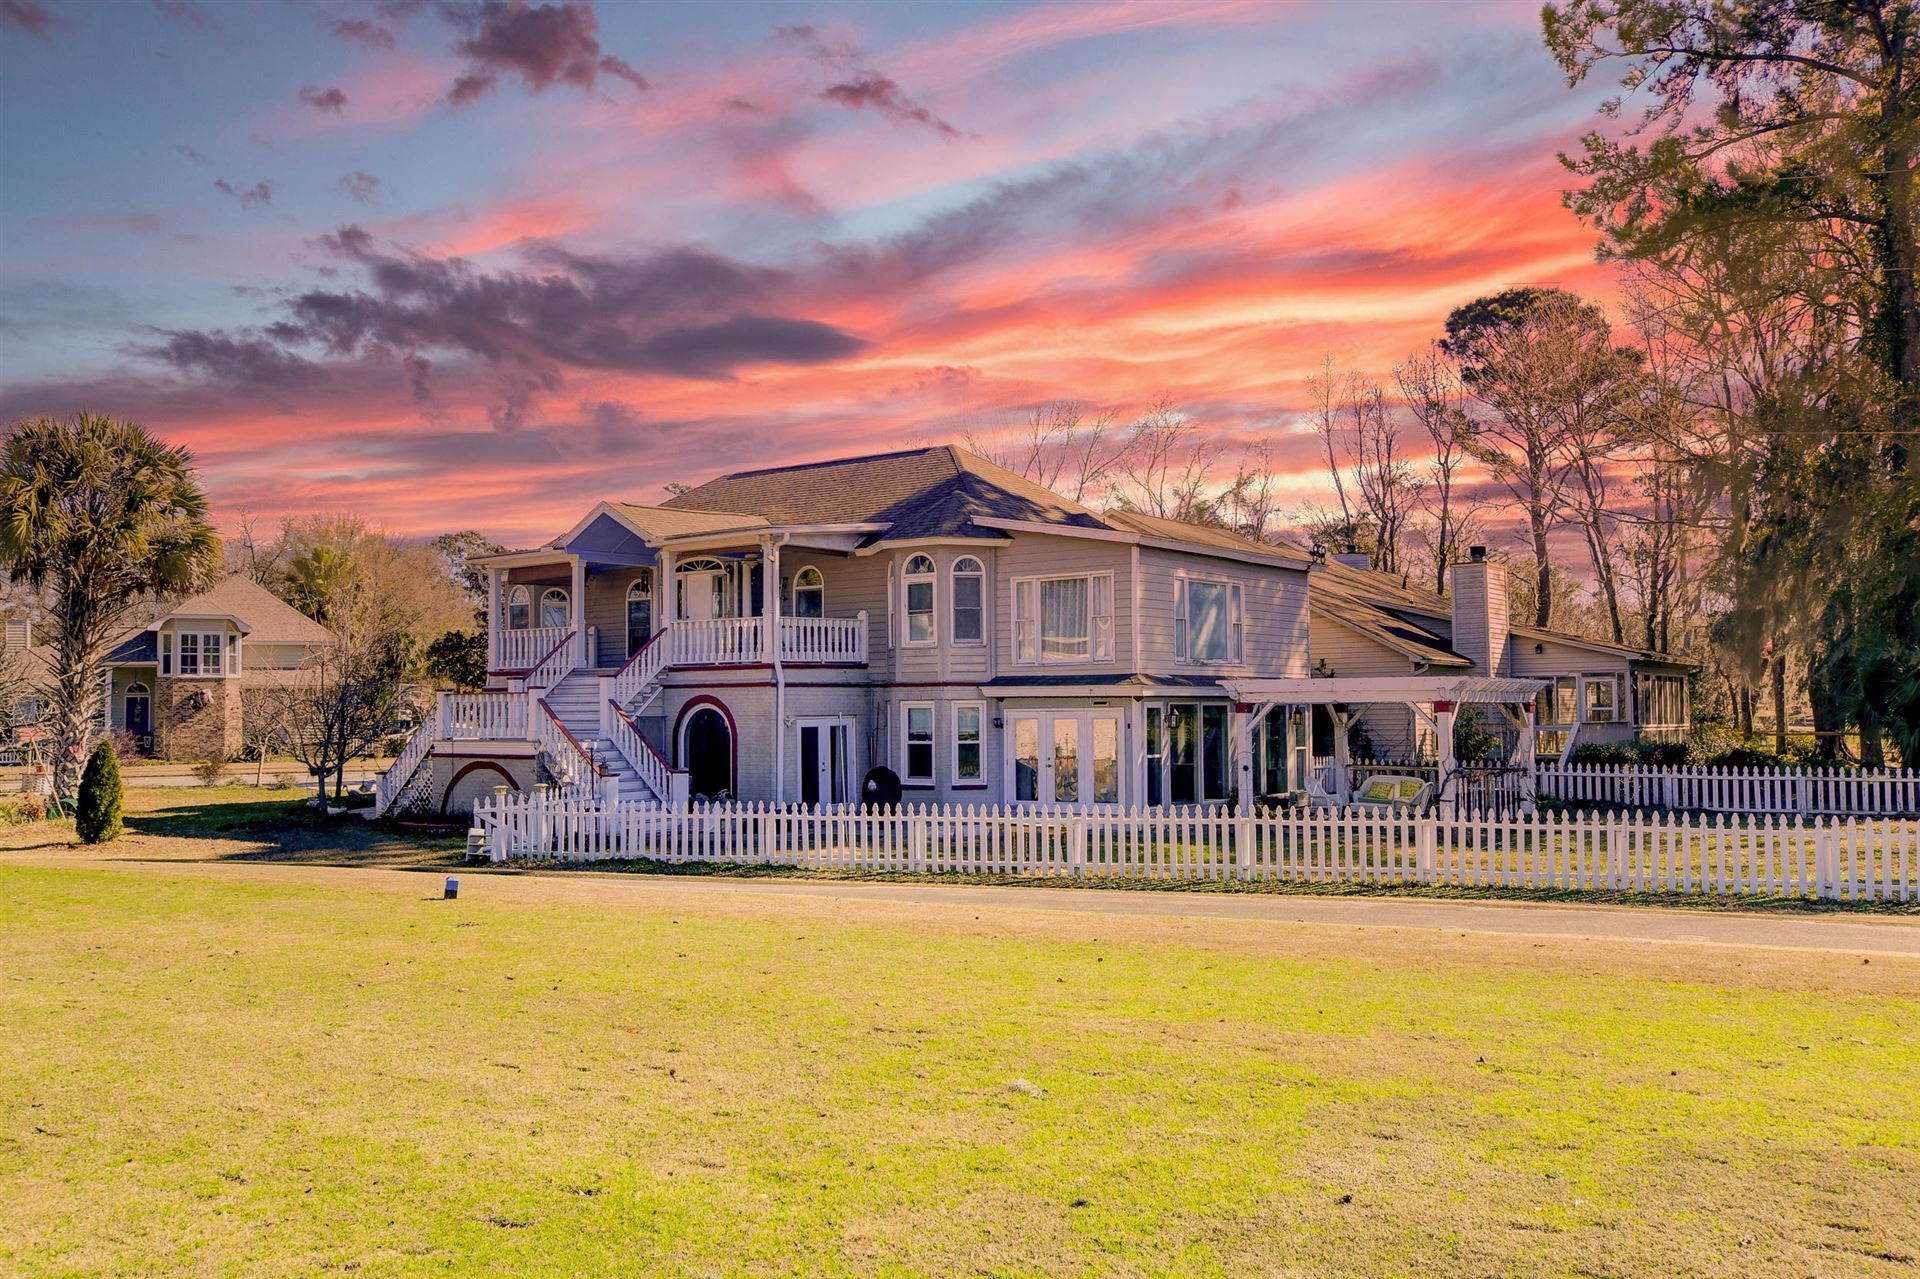 29 Oatly Circle, Charleston, SC 29414 - MLS#: 21001676